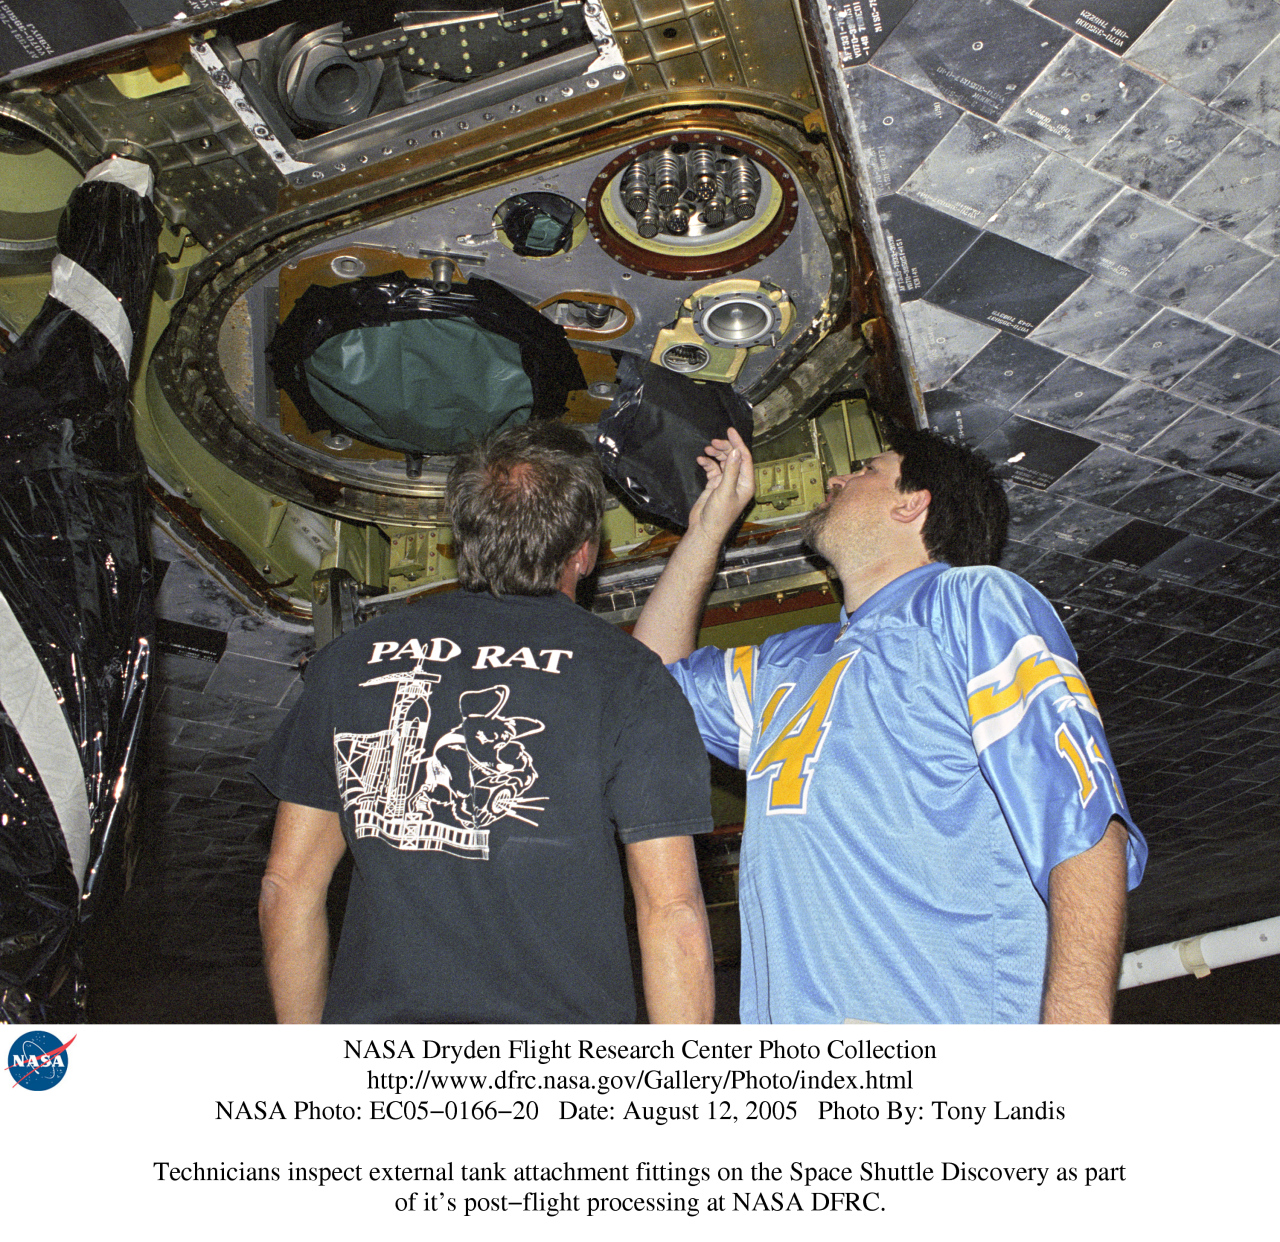 space shuttle umbilical connections - photo #11